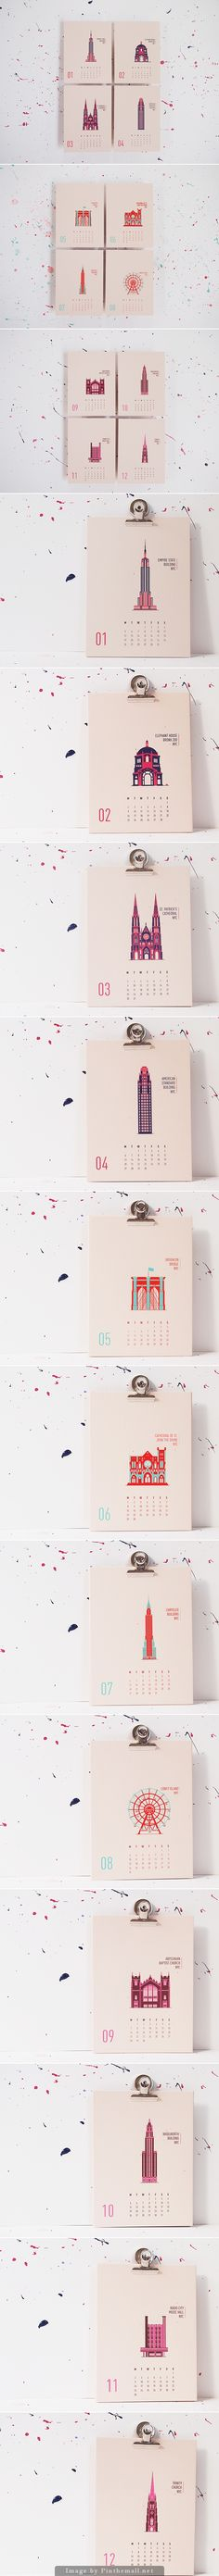 Architecture!   New York City 2015 Calendar by Marieken Hensen